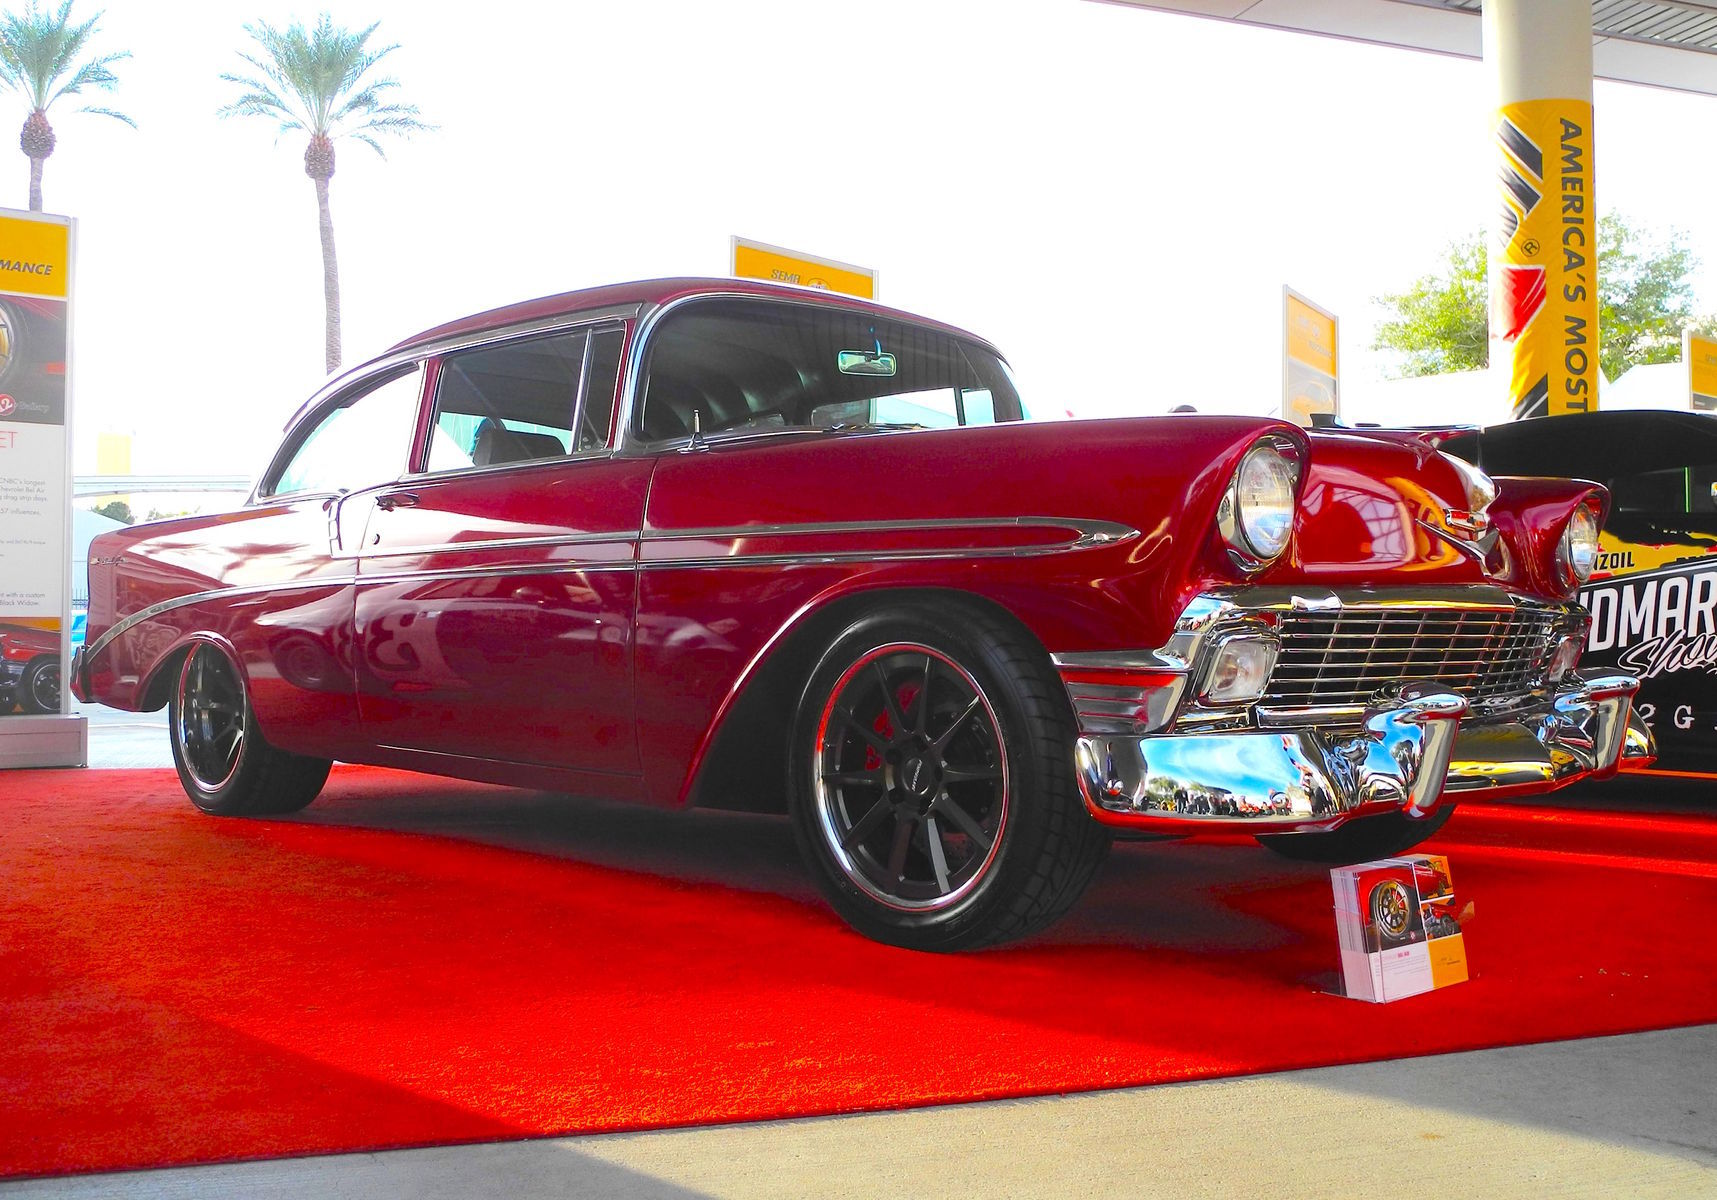 1956 Chevrolet Bel Air | Flat 12 Gallery's